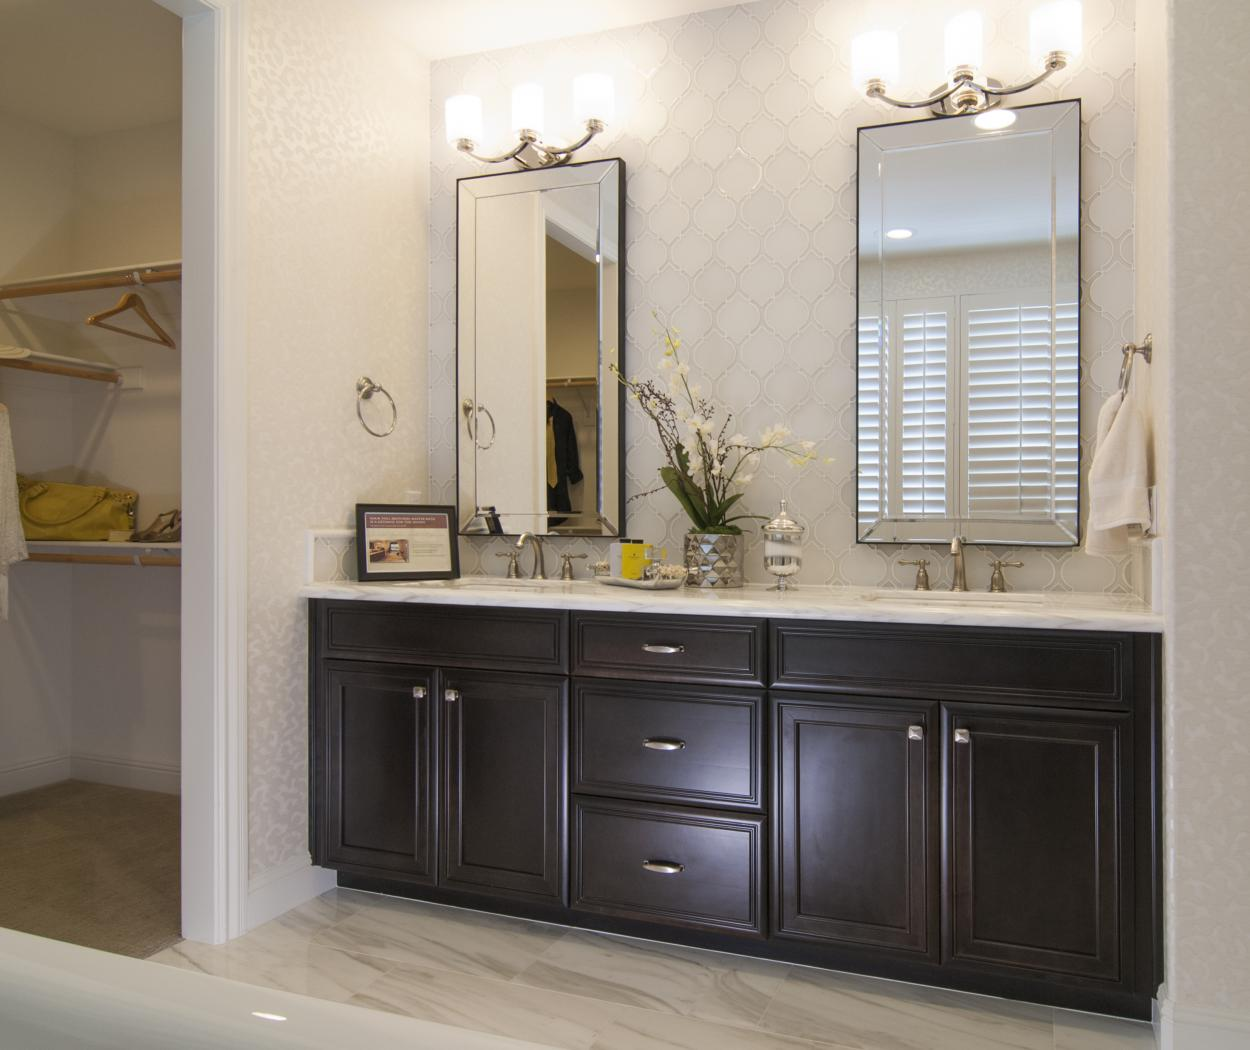 Beautiful Dark Espresso Stained Master Bathroom with Double Sinks, a Marble Counter Top and Silver Hardware